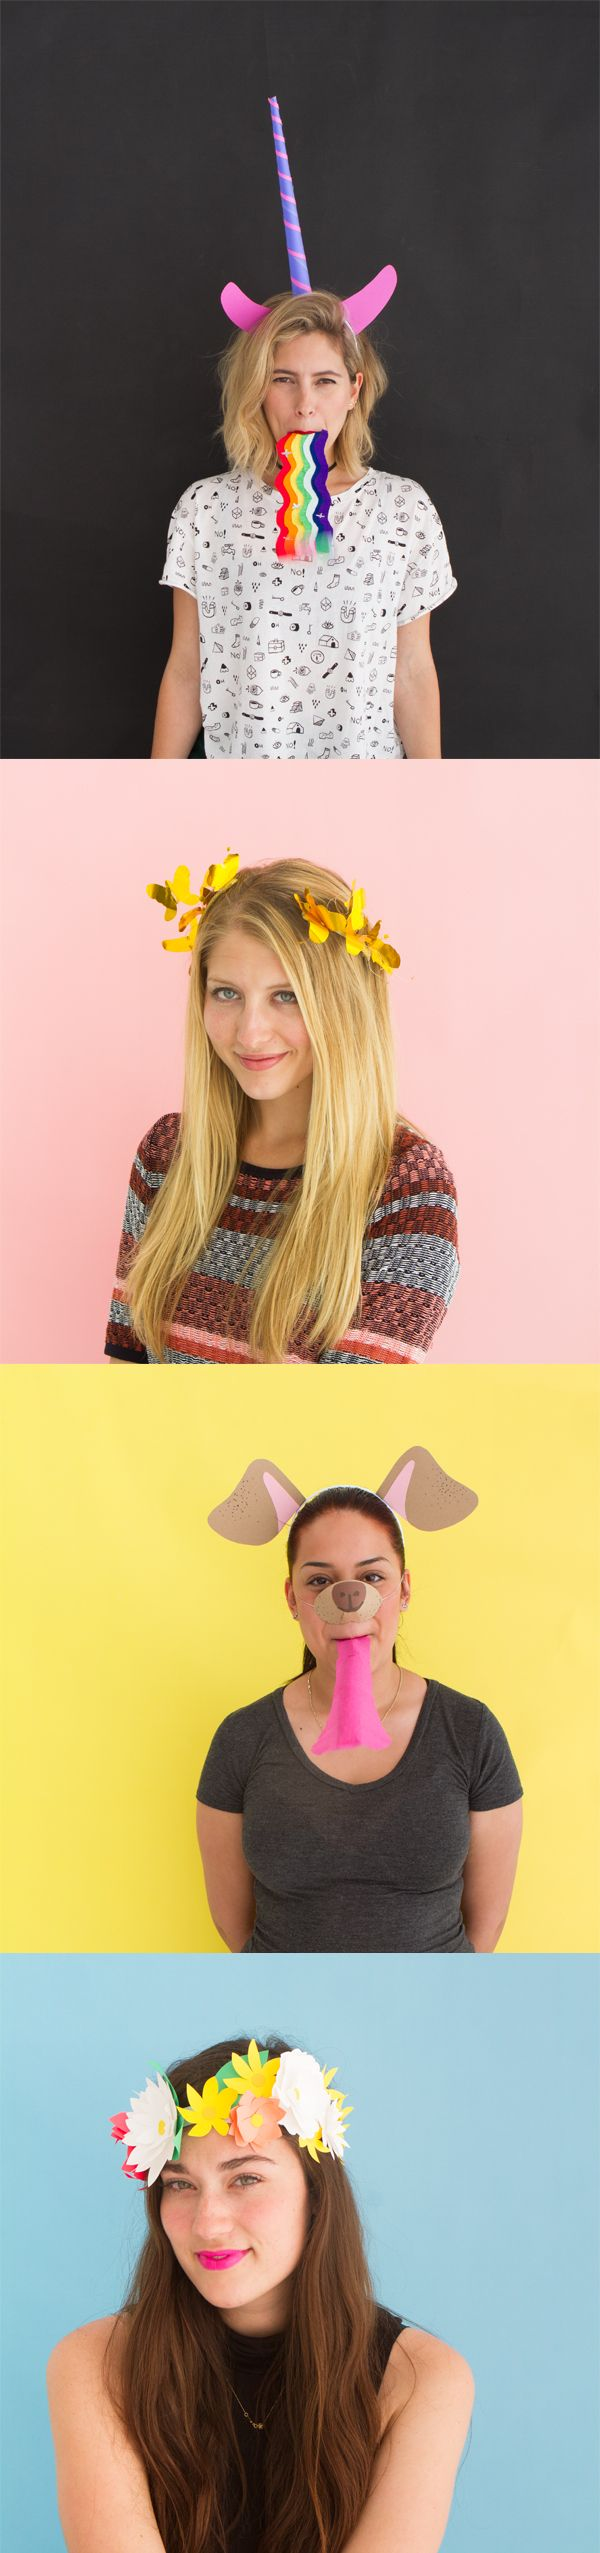 Snapchat Filter Costumes | Oh Happy Day!